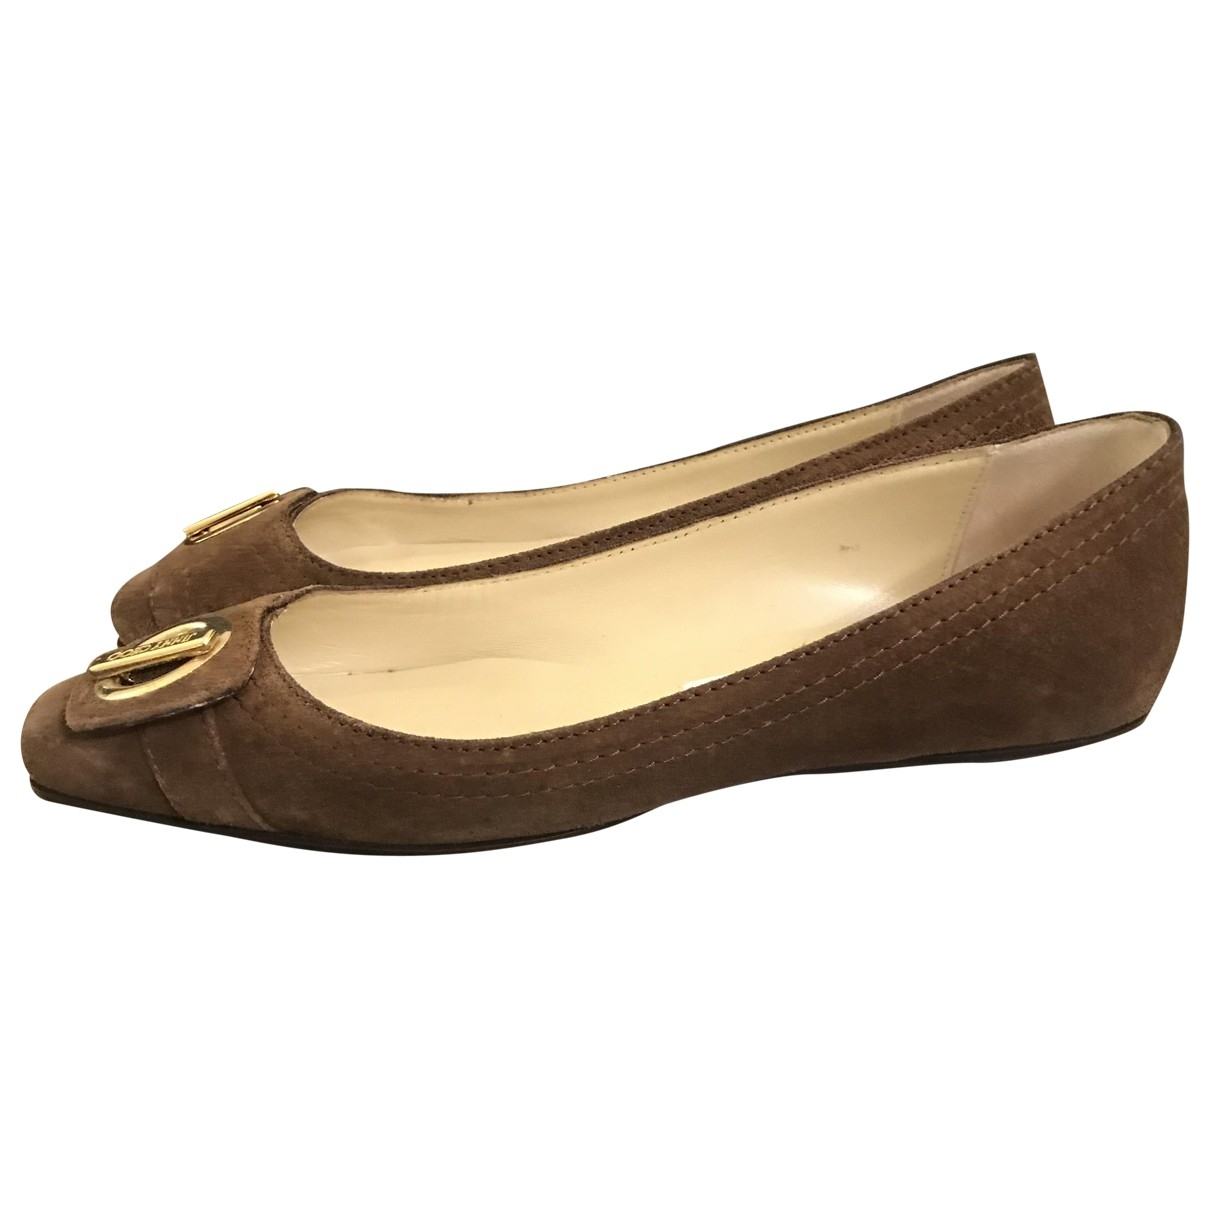 Jimmy Choo \N Brown Suede Ballet flats for Women 37 EU